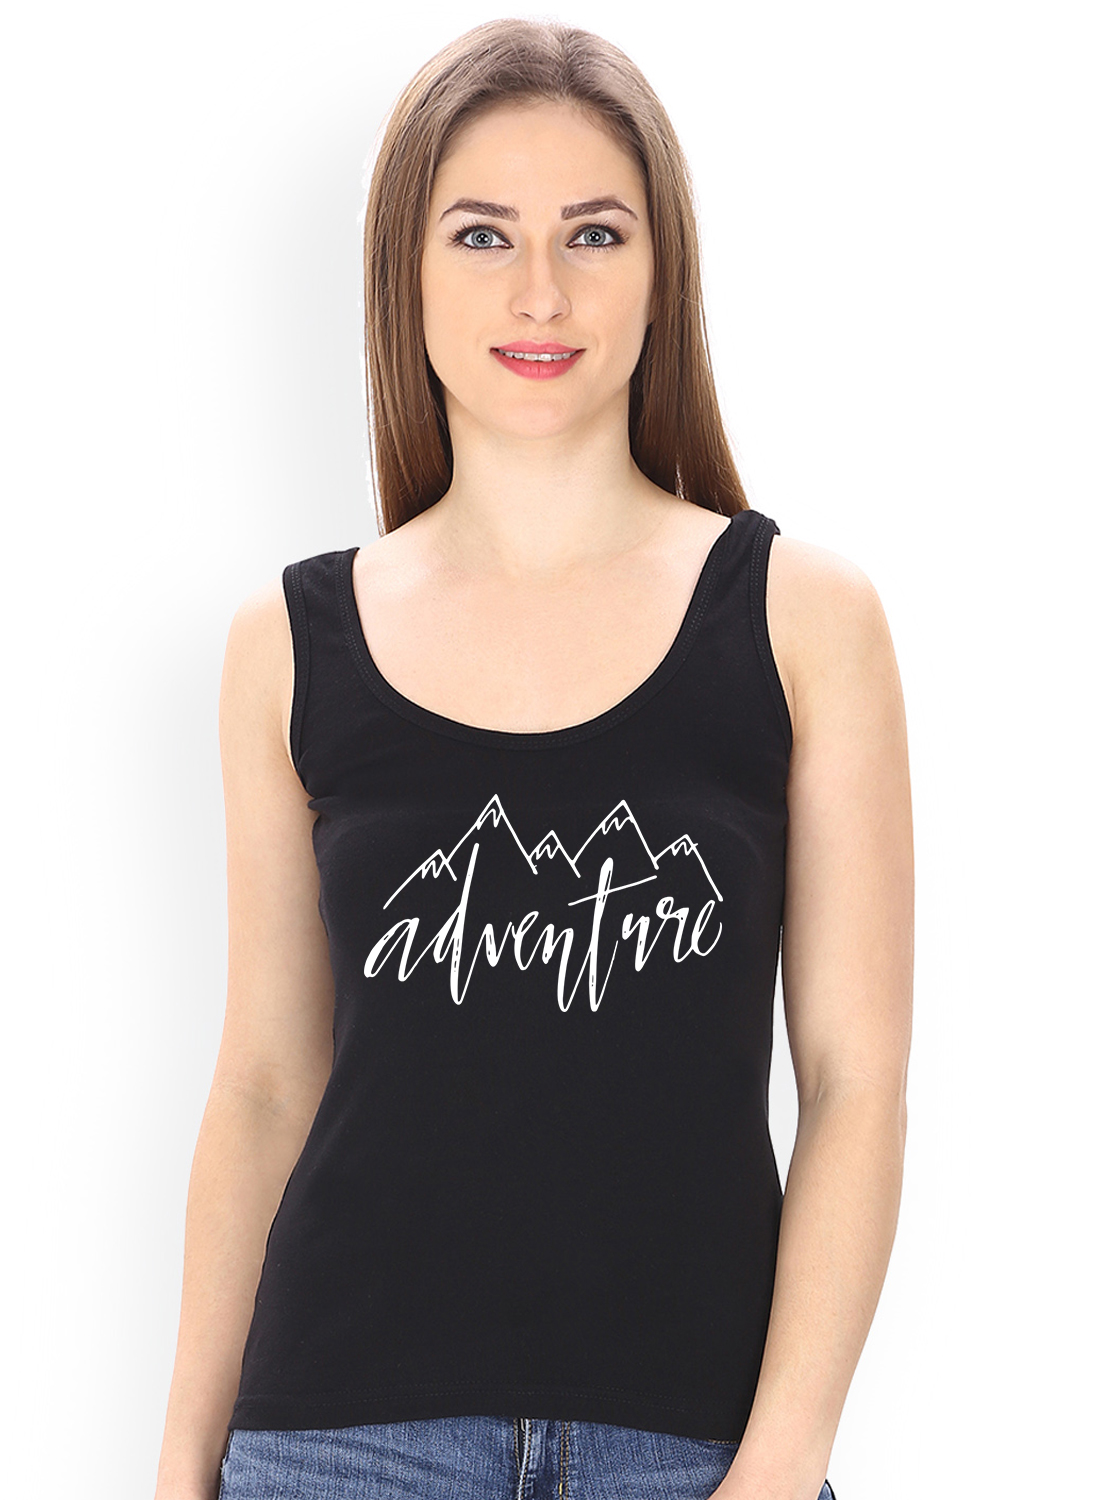 Caseria Women's Cotton Biowash Graphic Printed Tank Top - Adventure (Black, L)